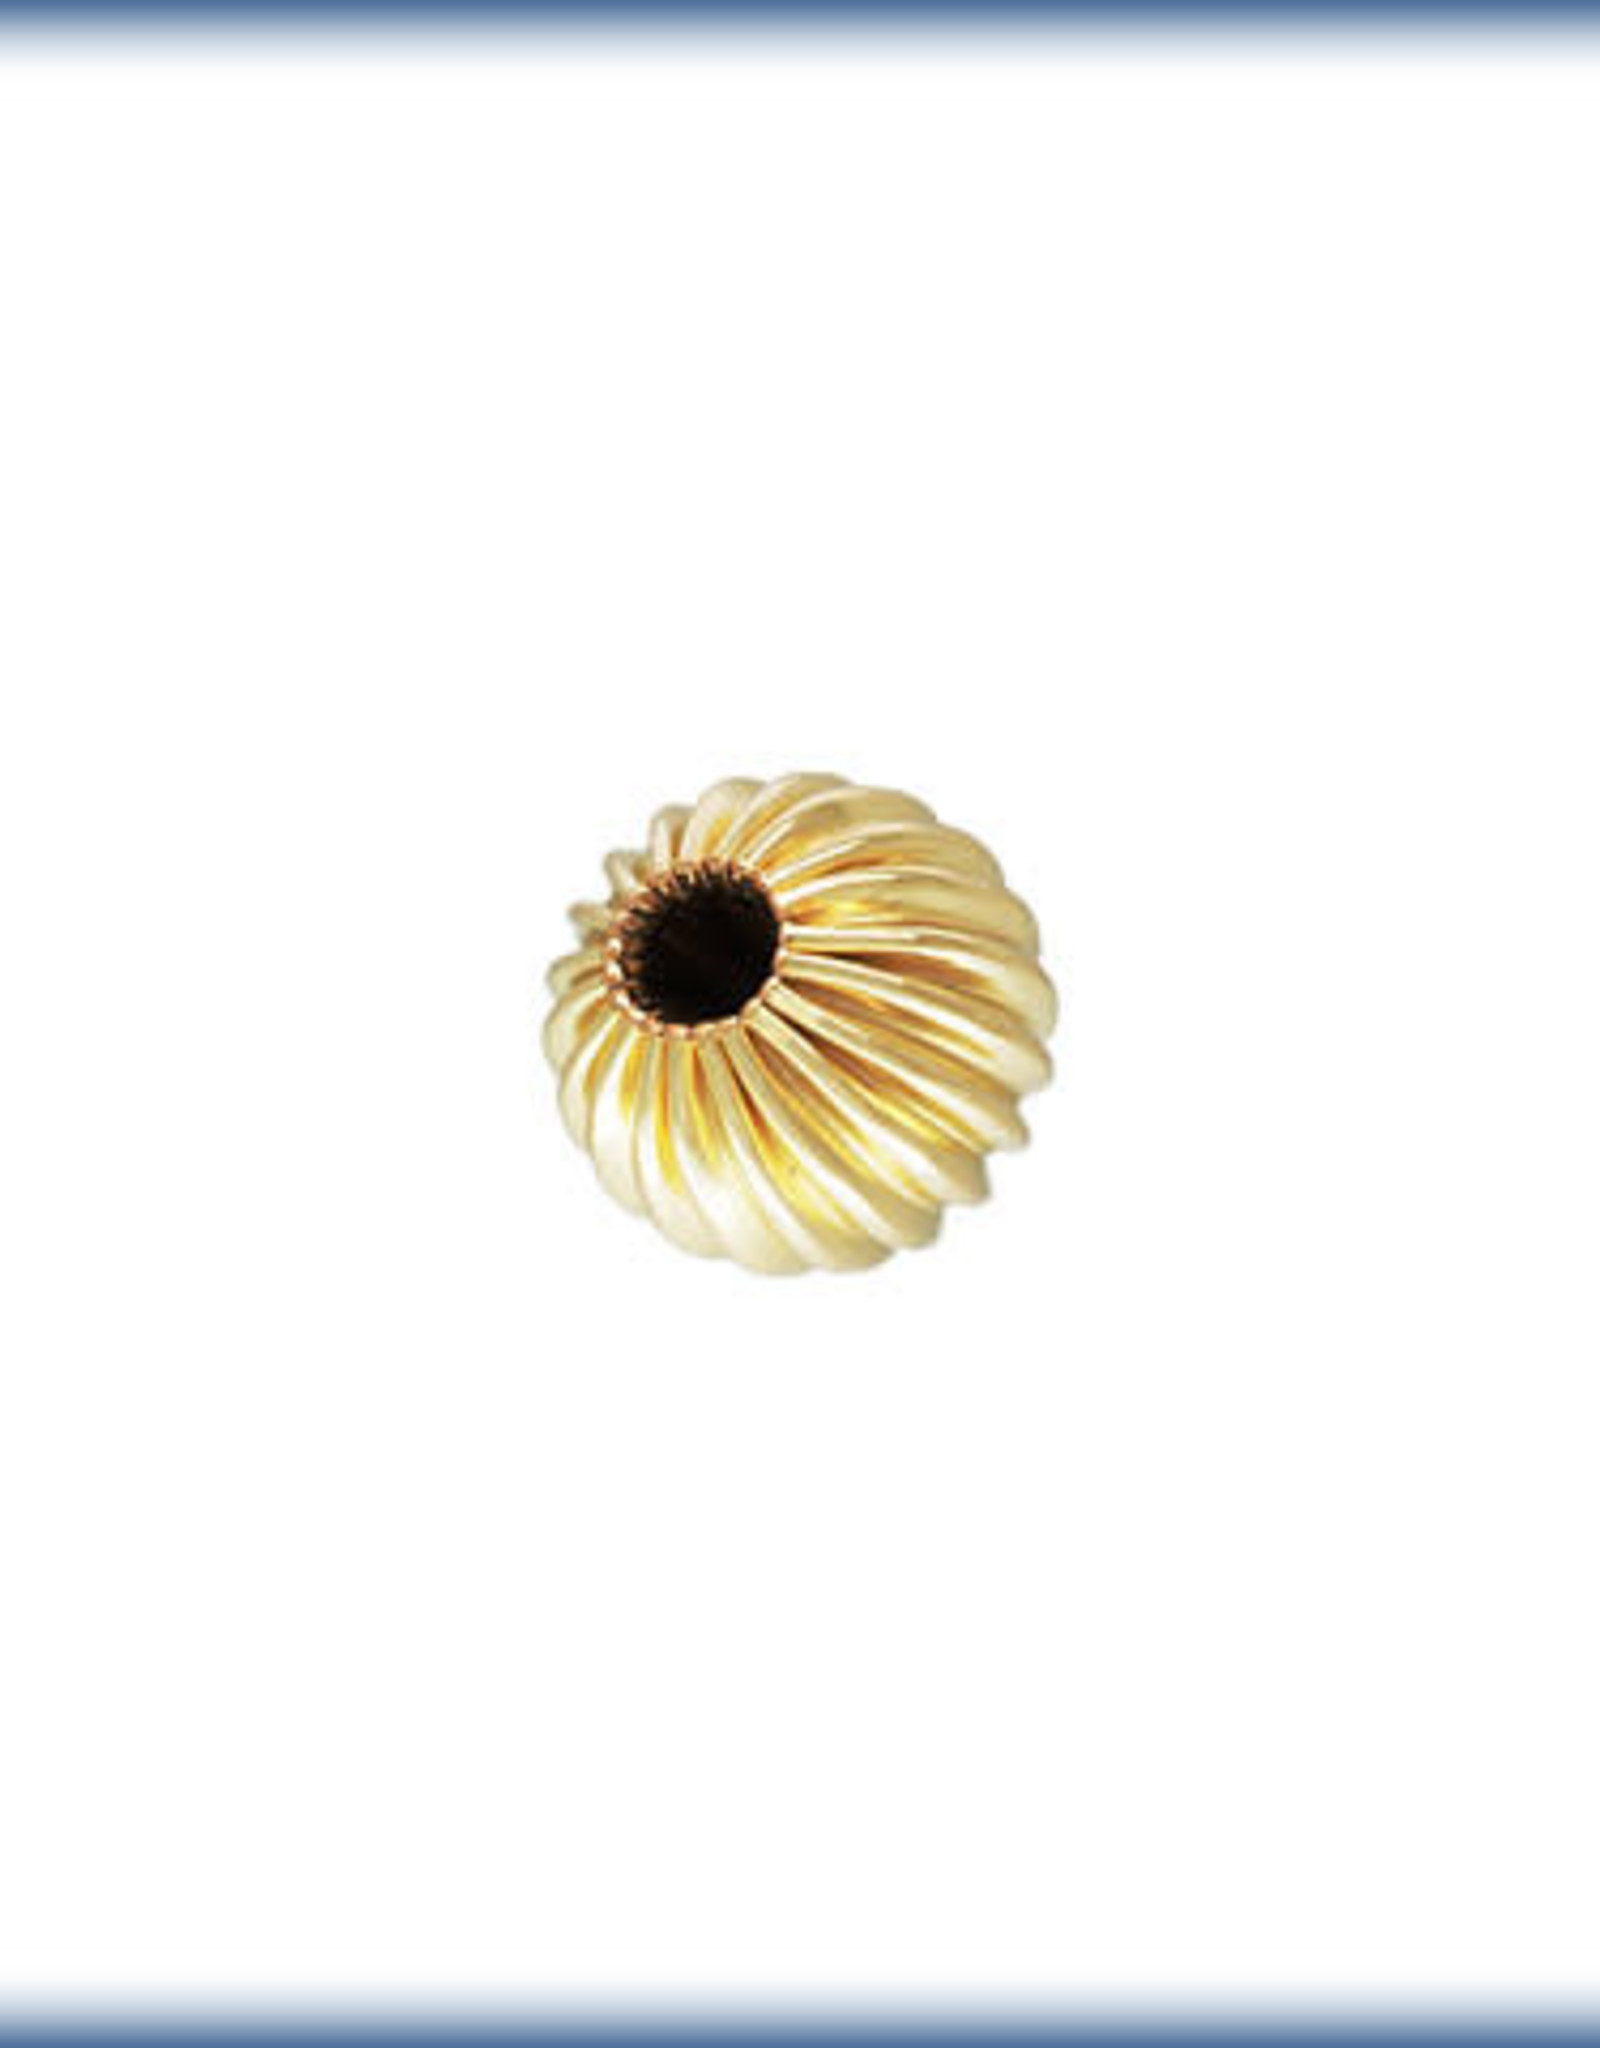 5mm Round Straight Corrugated Bead 14k Gold Filled Qty 6